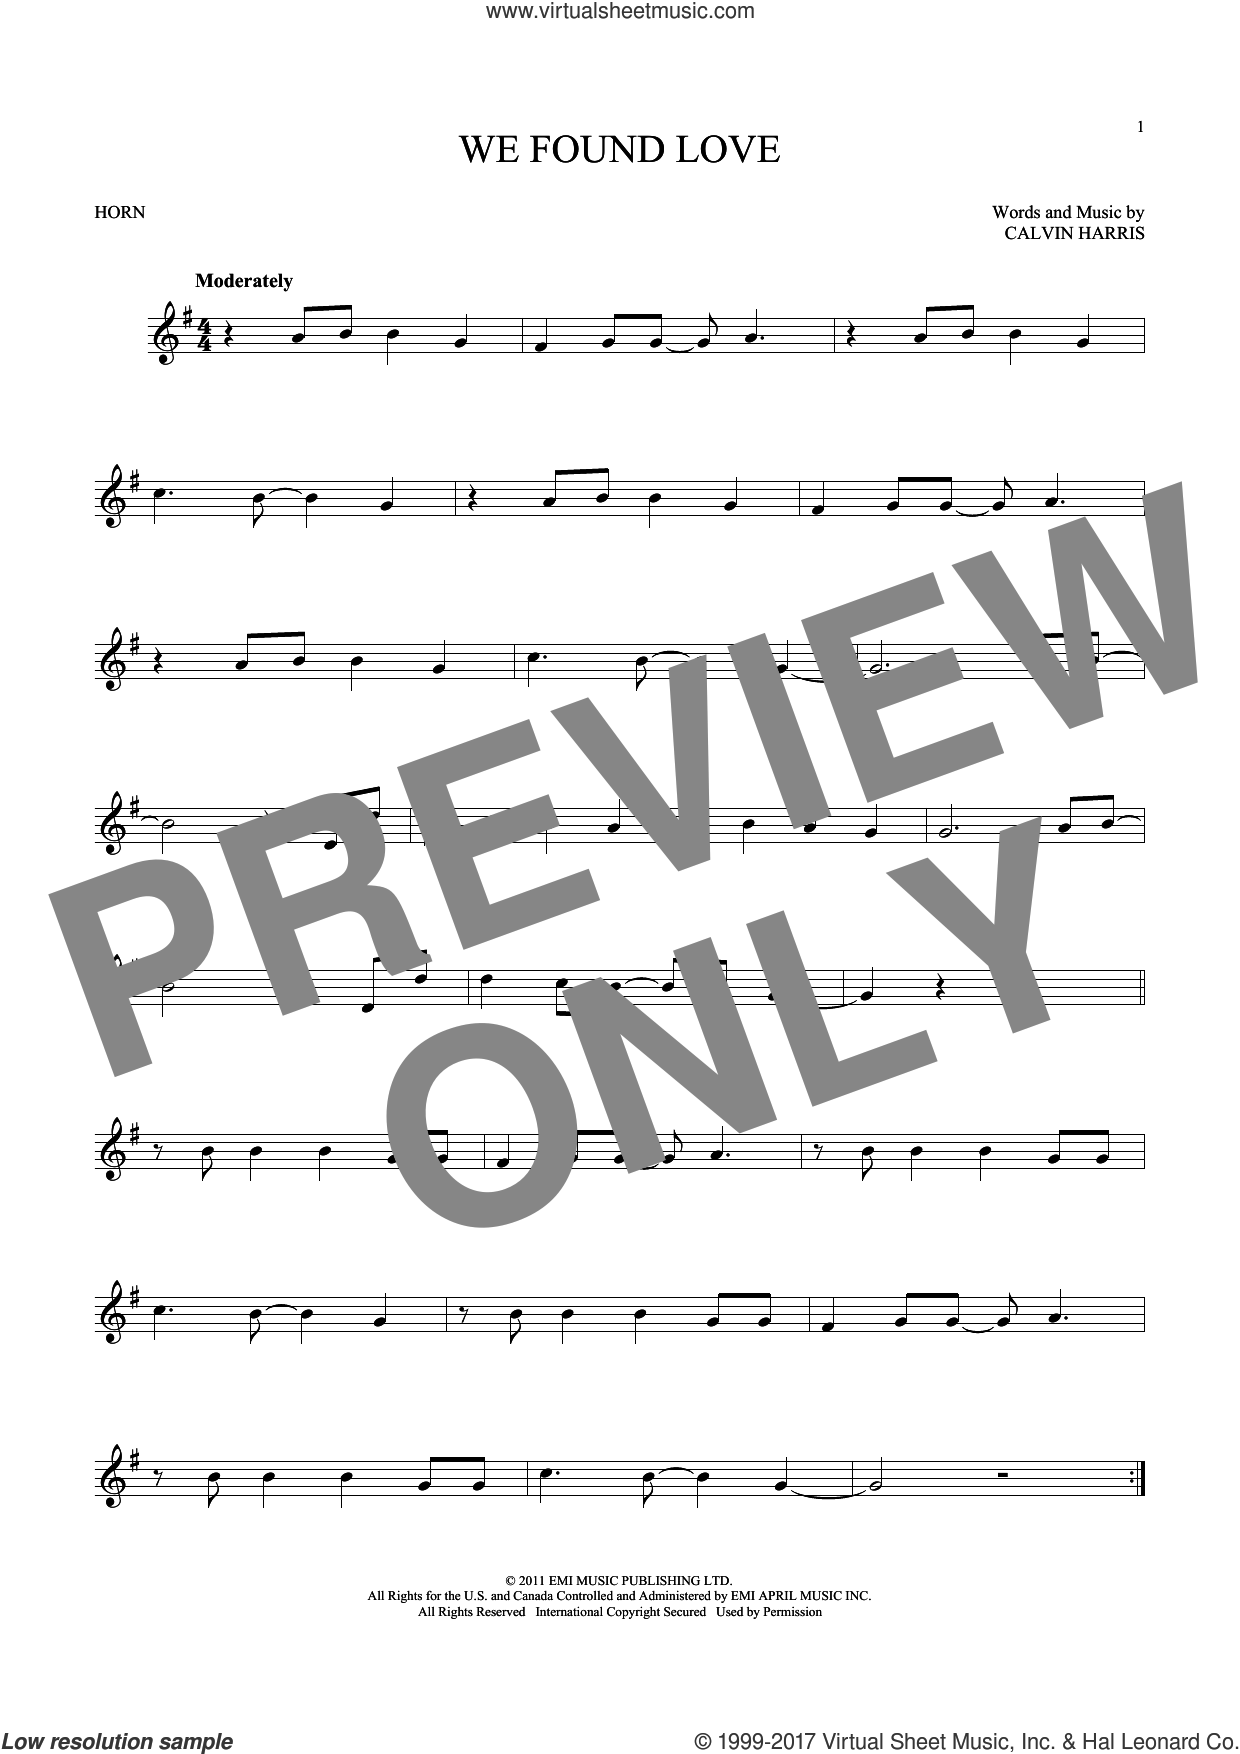 We Found Love sheet music for horn solo by Rihanna featuring Calvin Harris and Calvin Harris, intermediate skill level